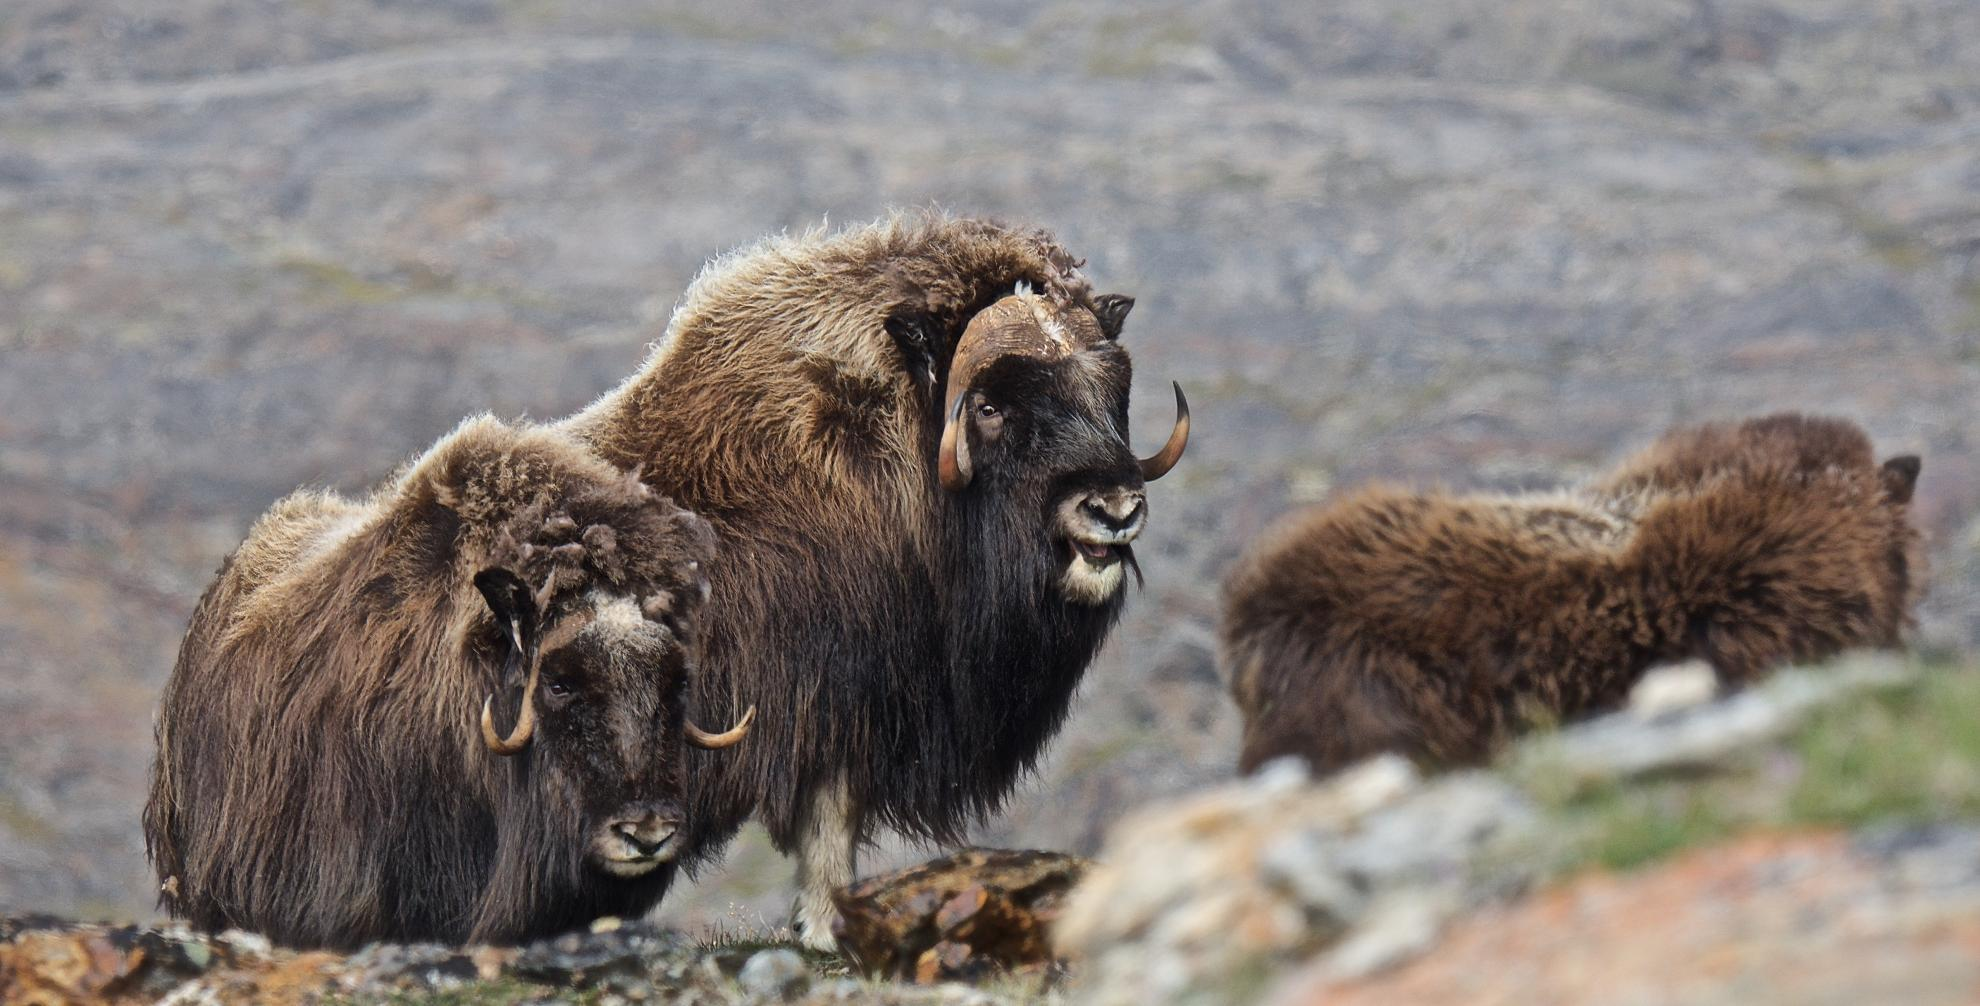 Muskoxen - Bull, Cow, Young © Dave Foreman